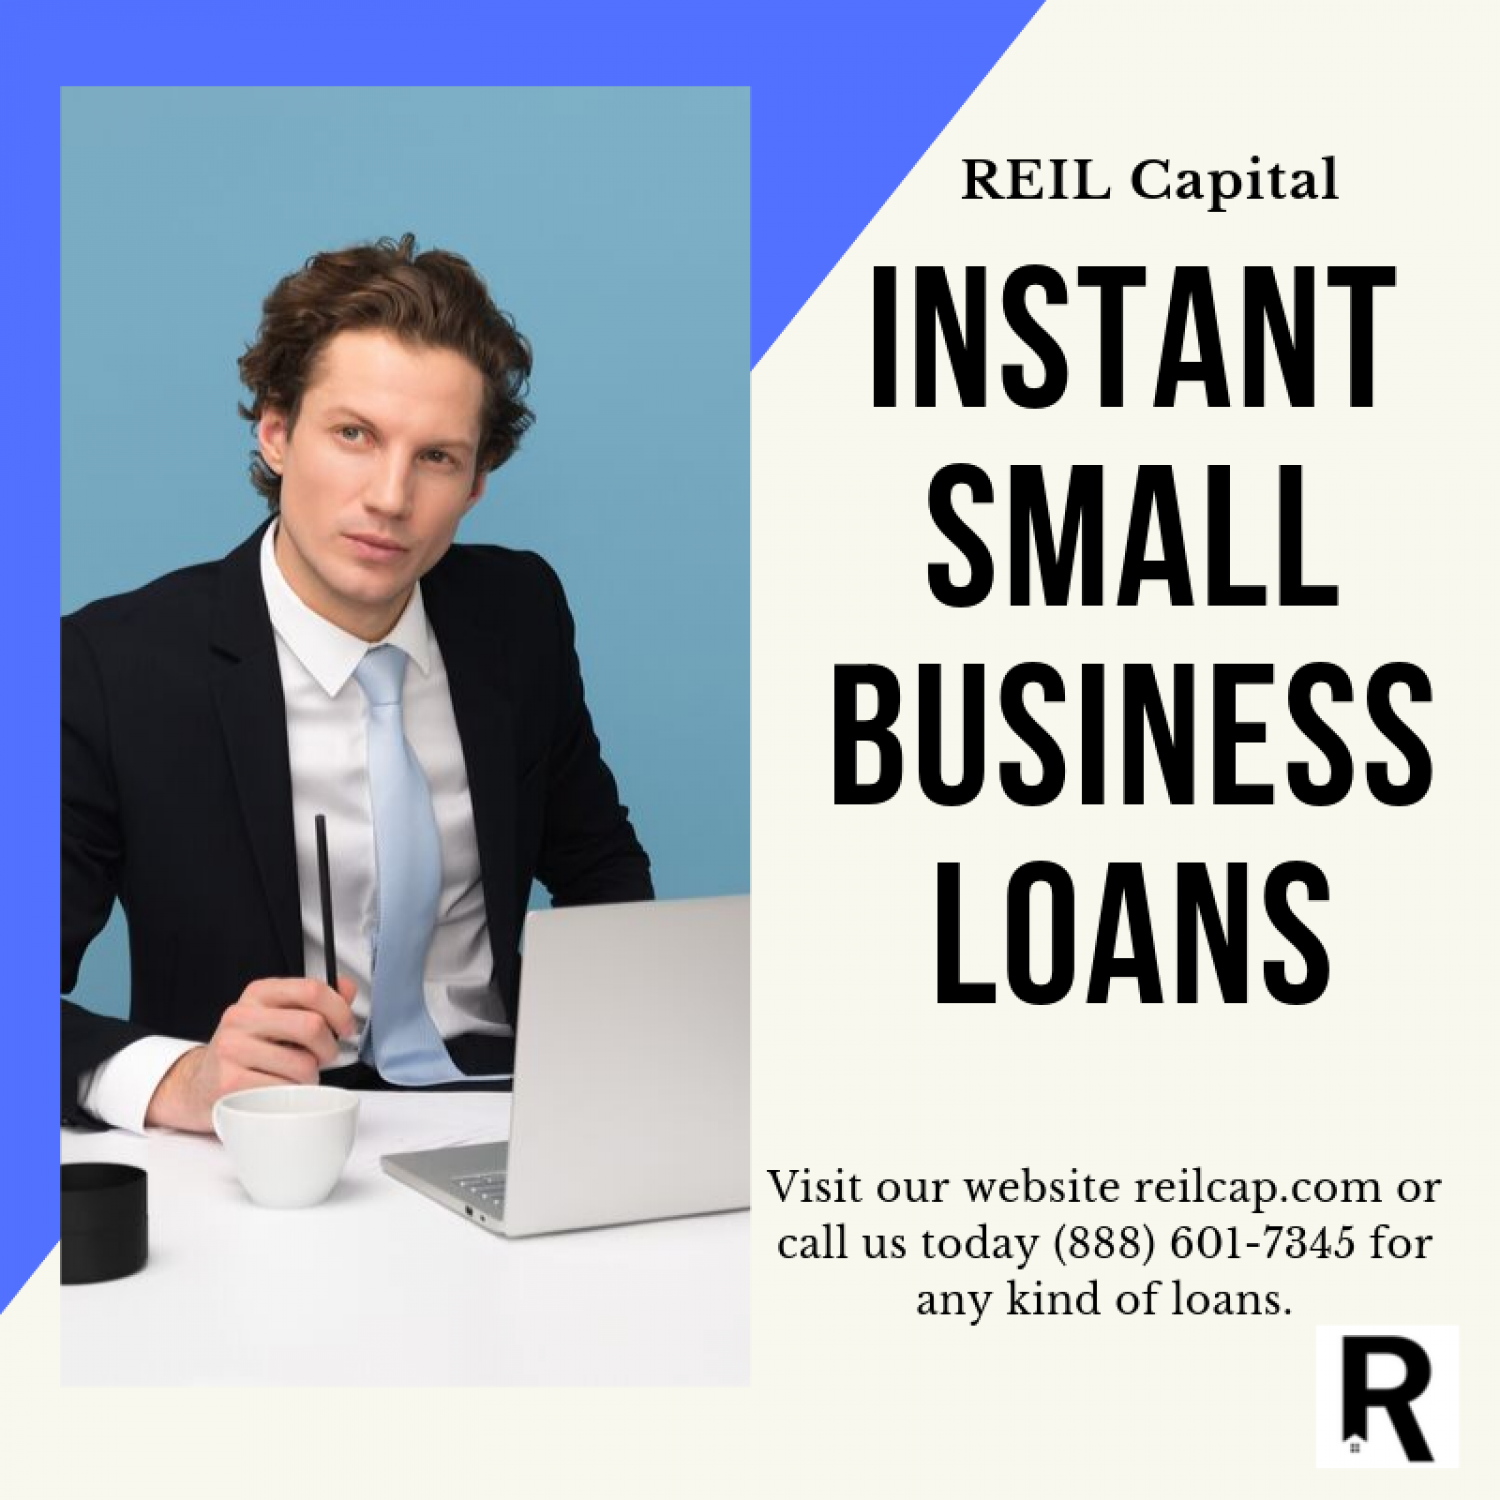 Quick Business Loans in the USA Infographic